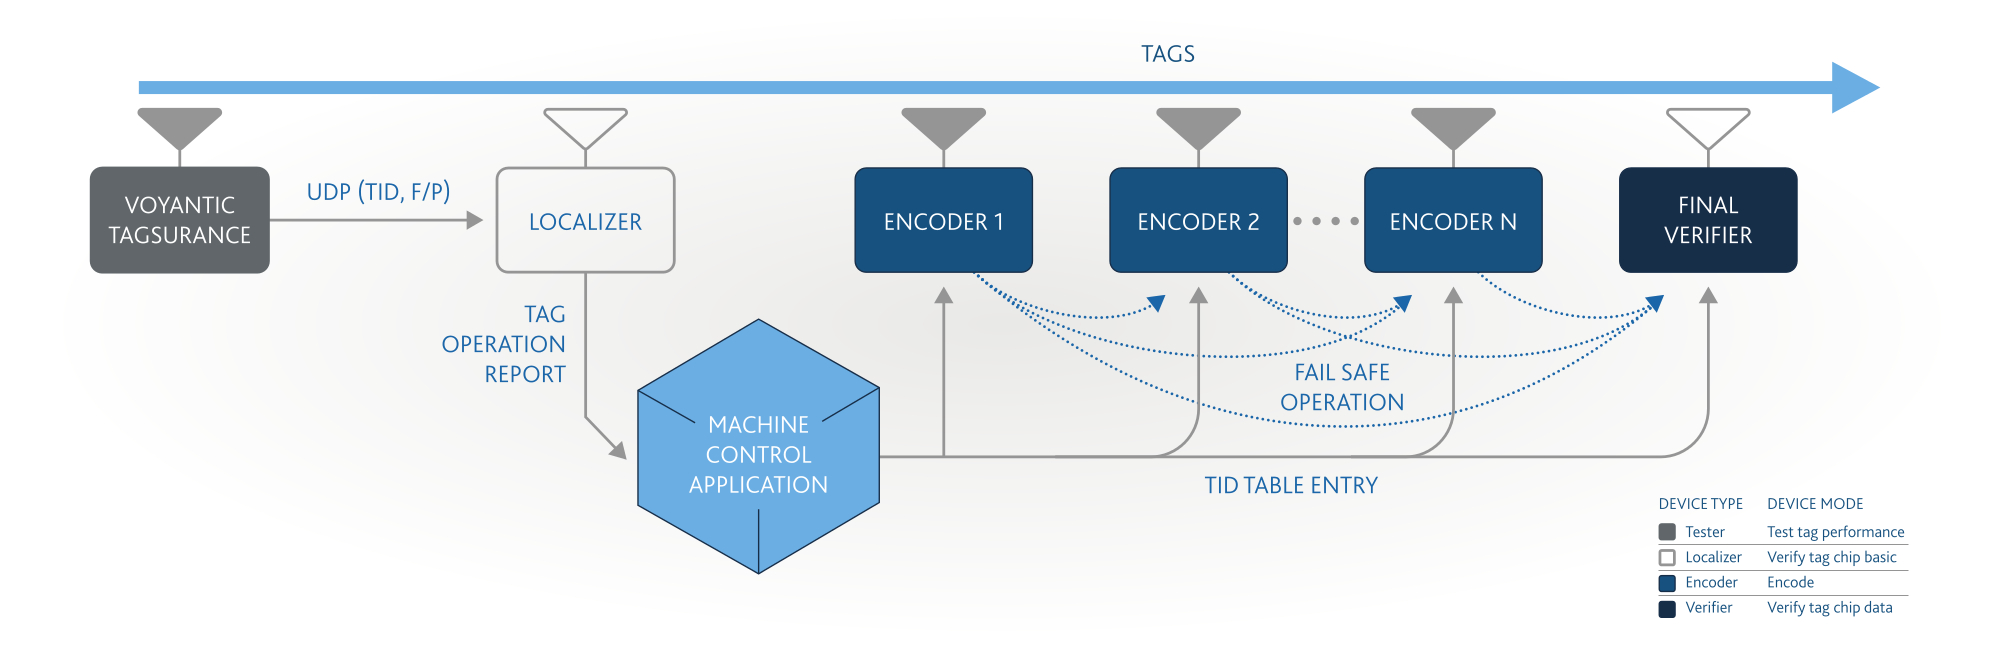 Voyantic Tagsurance And Impinj Itemencode Integration Overview Block Diagram Of A Rfid Tag Chip Figure 1 Testing Encoding